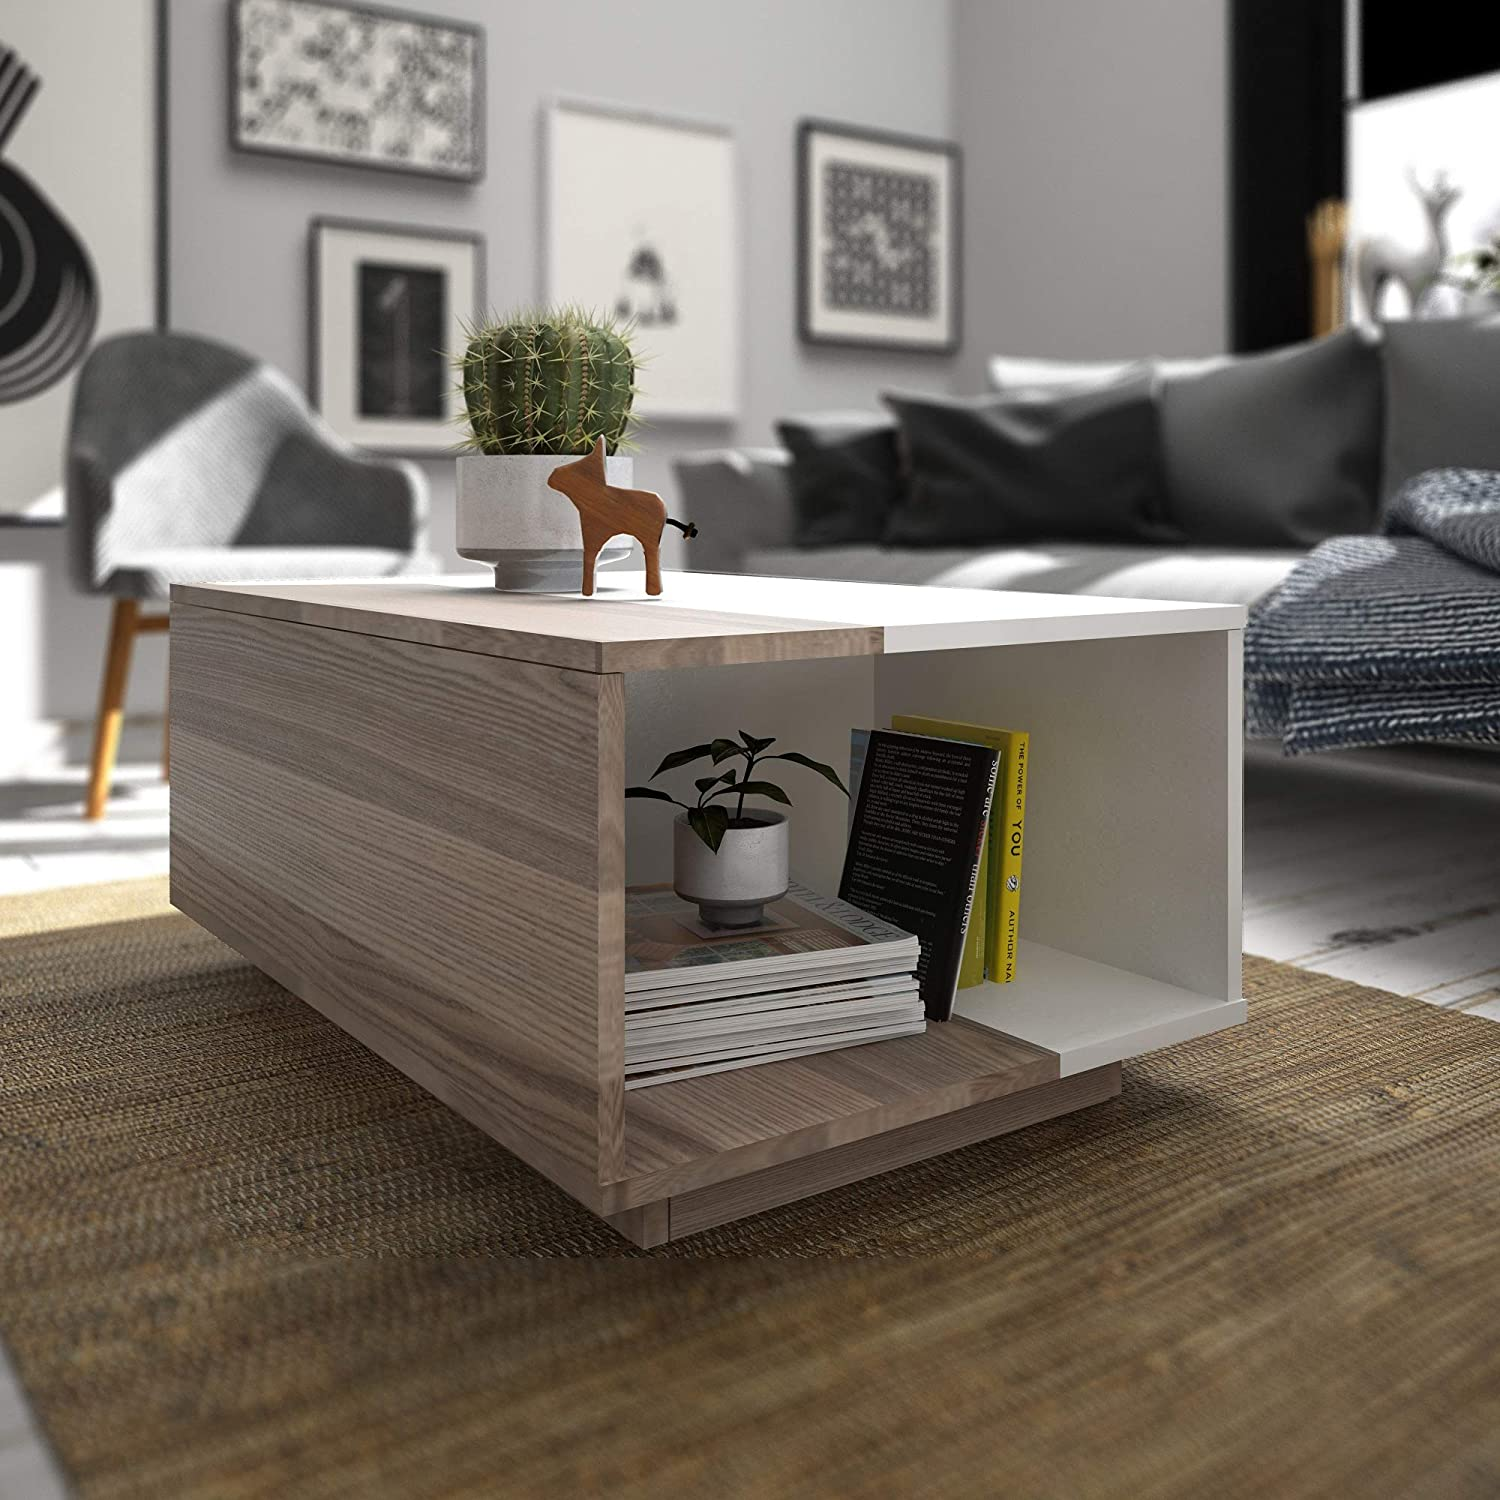 Decorotika – Surprise Modern Coffee and Cocktail Table – Living Room Furniture